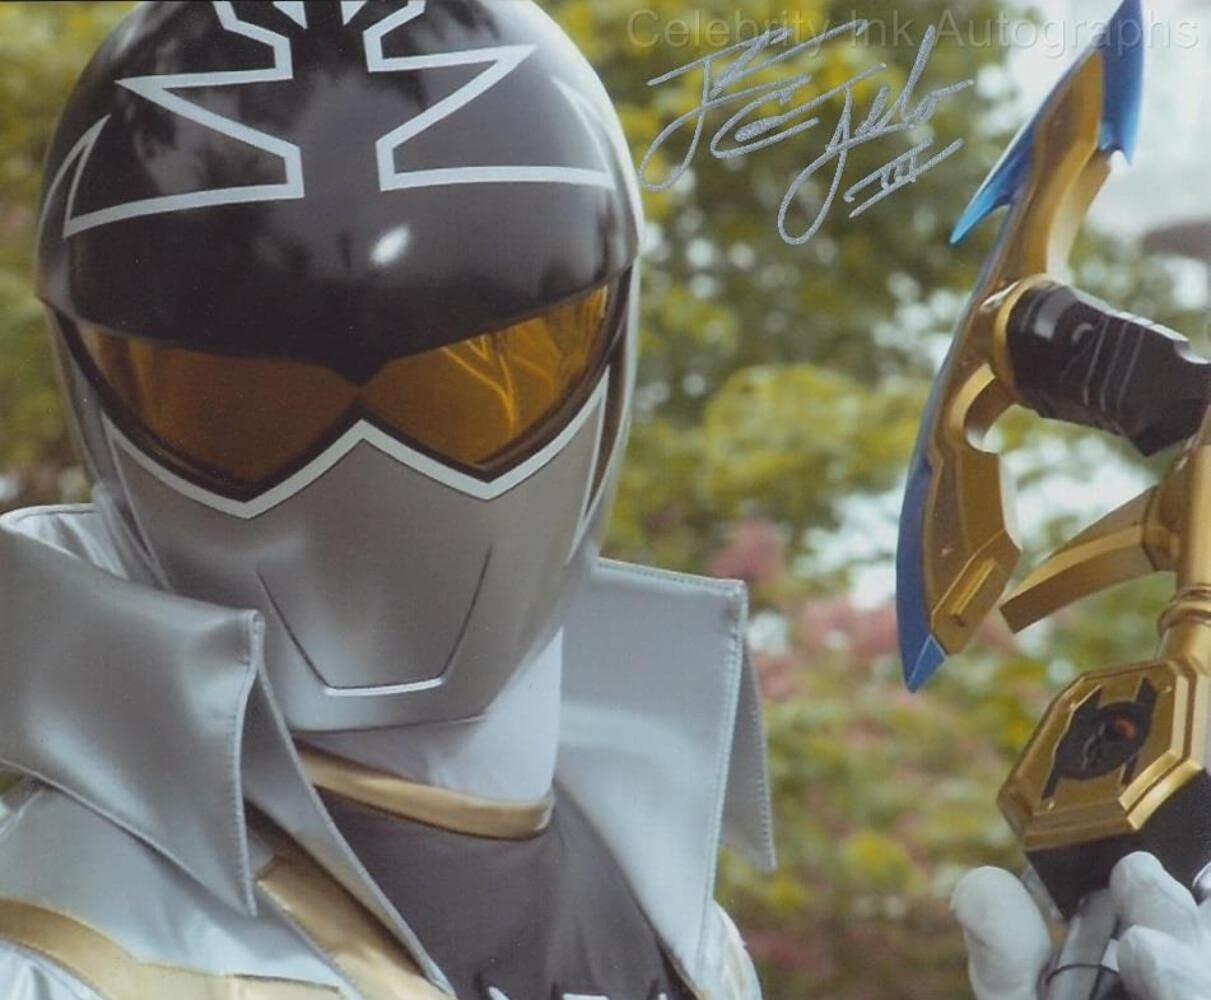 CAMERON JEBO as Orion the Silver Super Ranking TOP1 Megaforce Ranger Popular overseas Mighty -